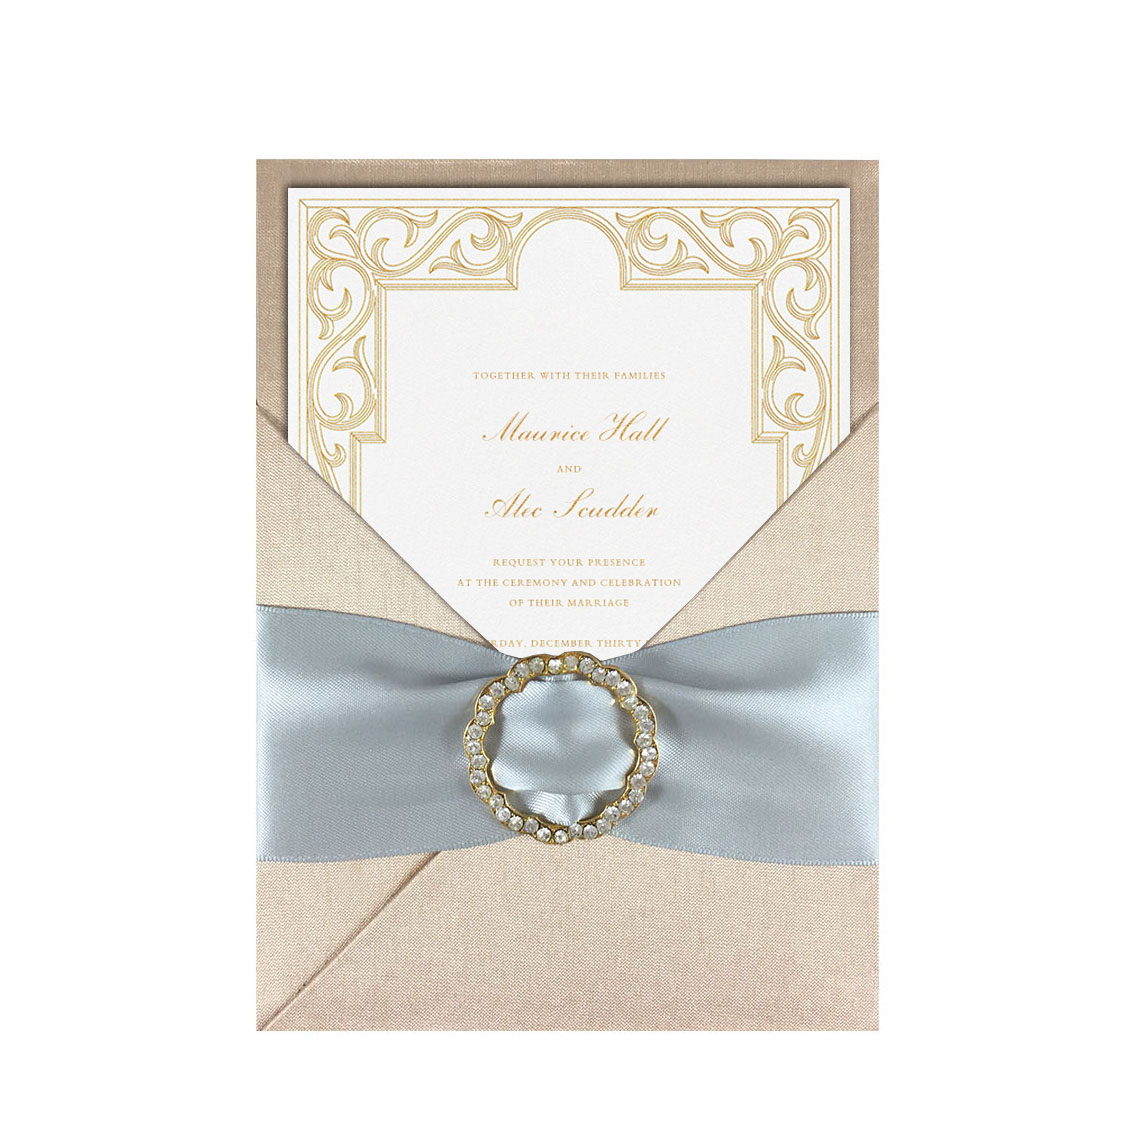 Luxury wedding invitation cards